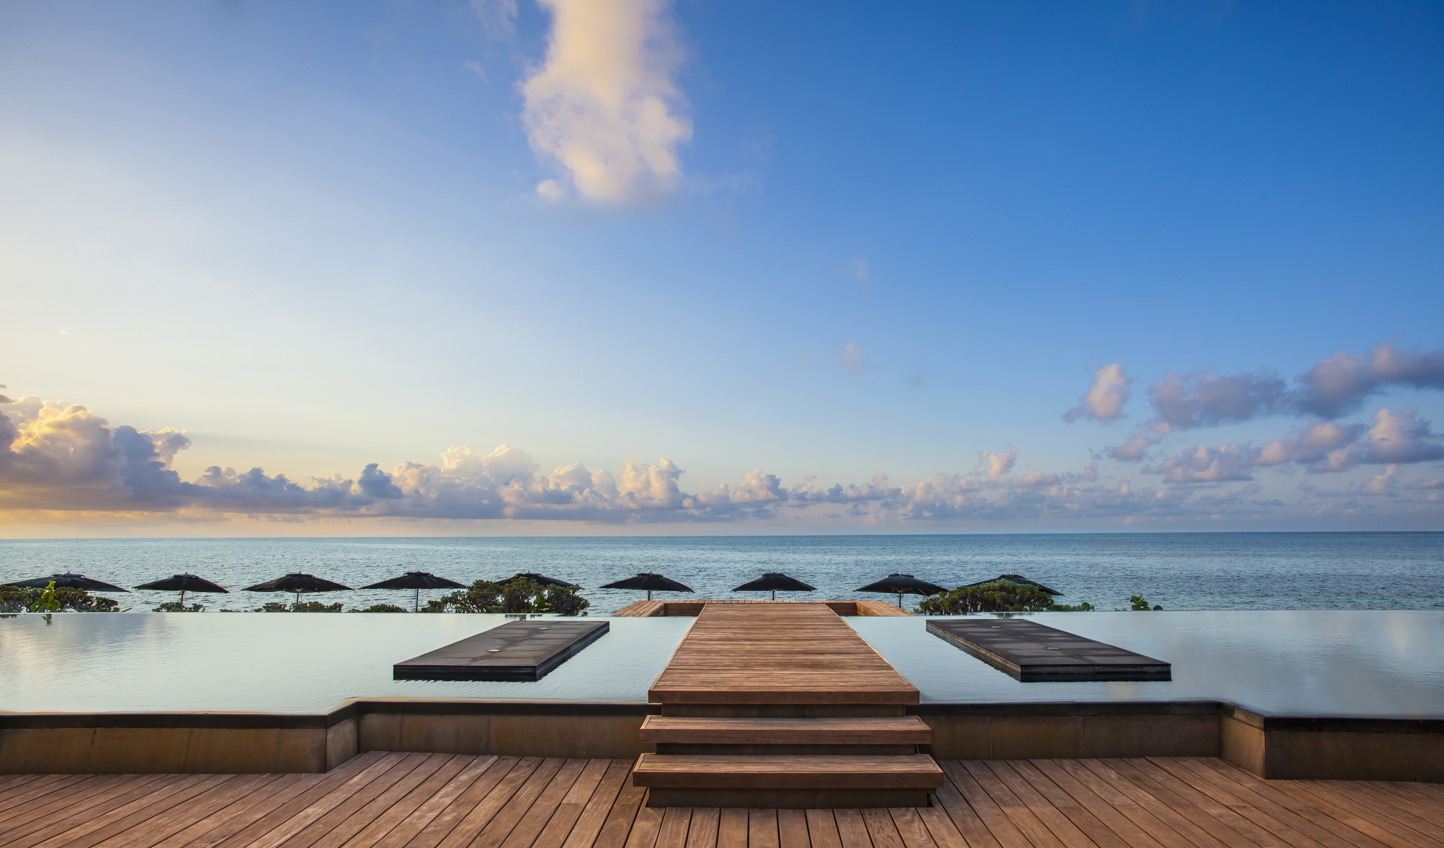 Unbeatable infinity pool views